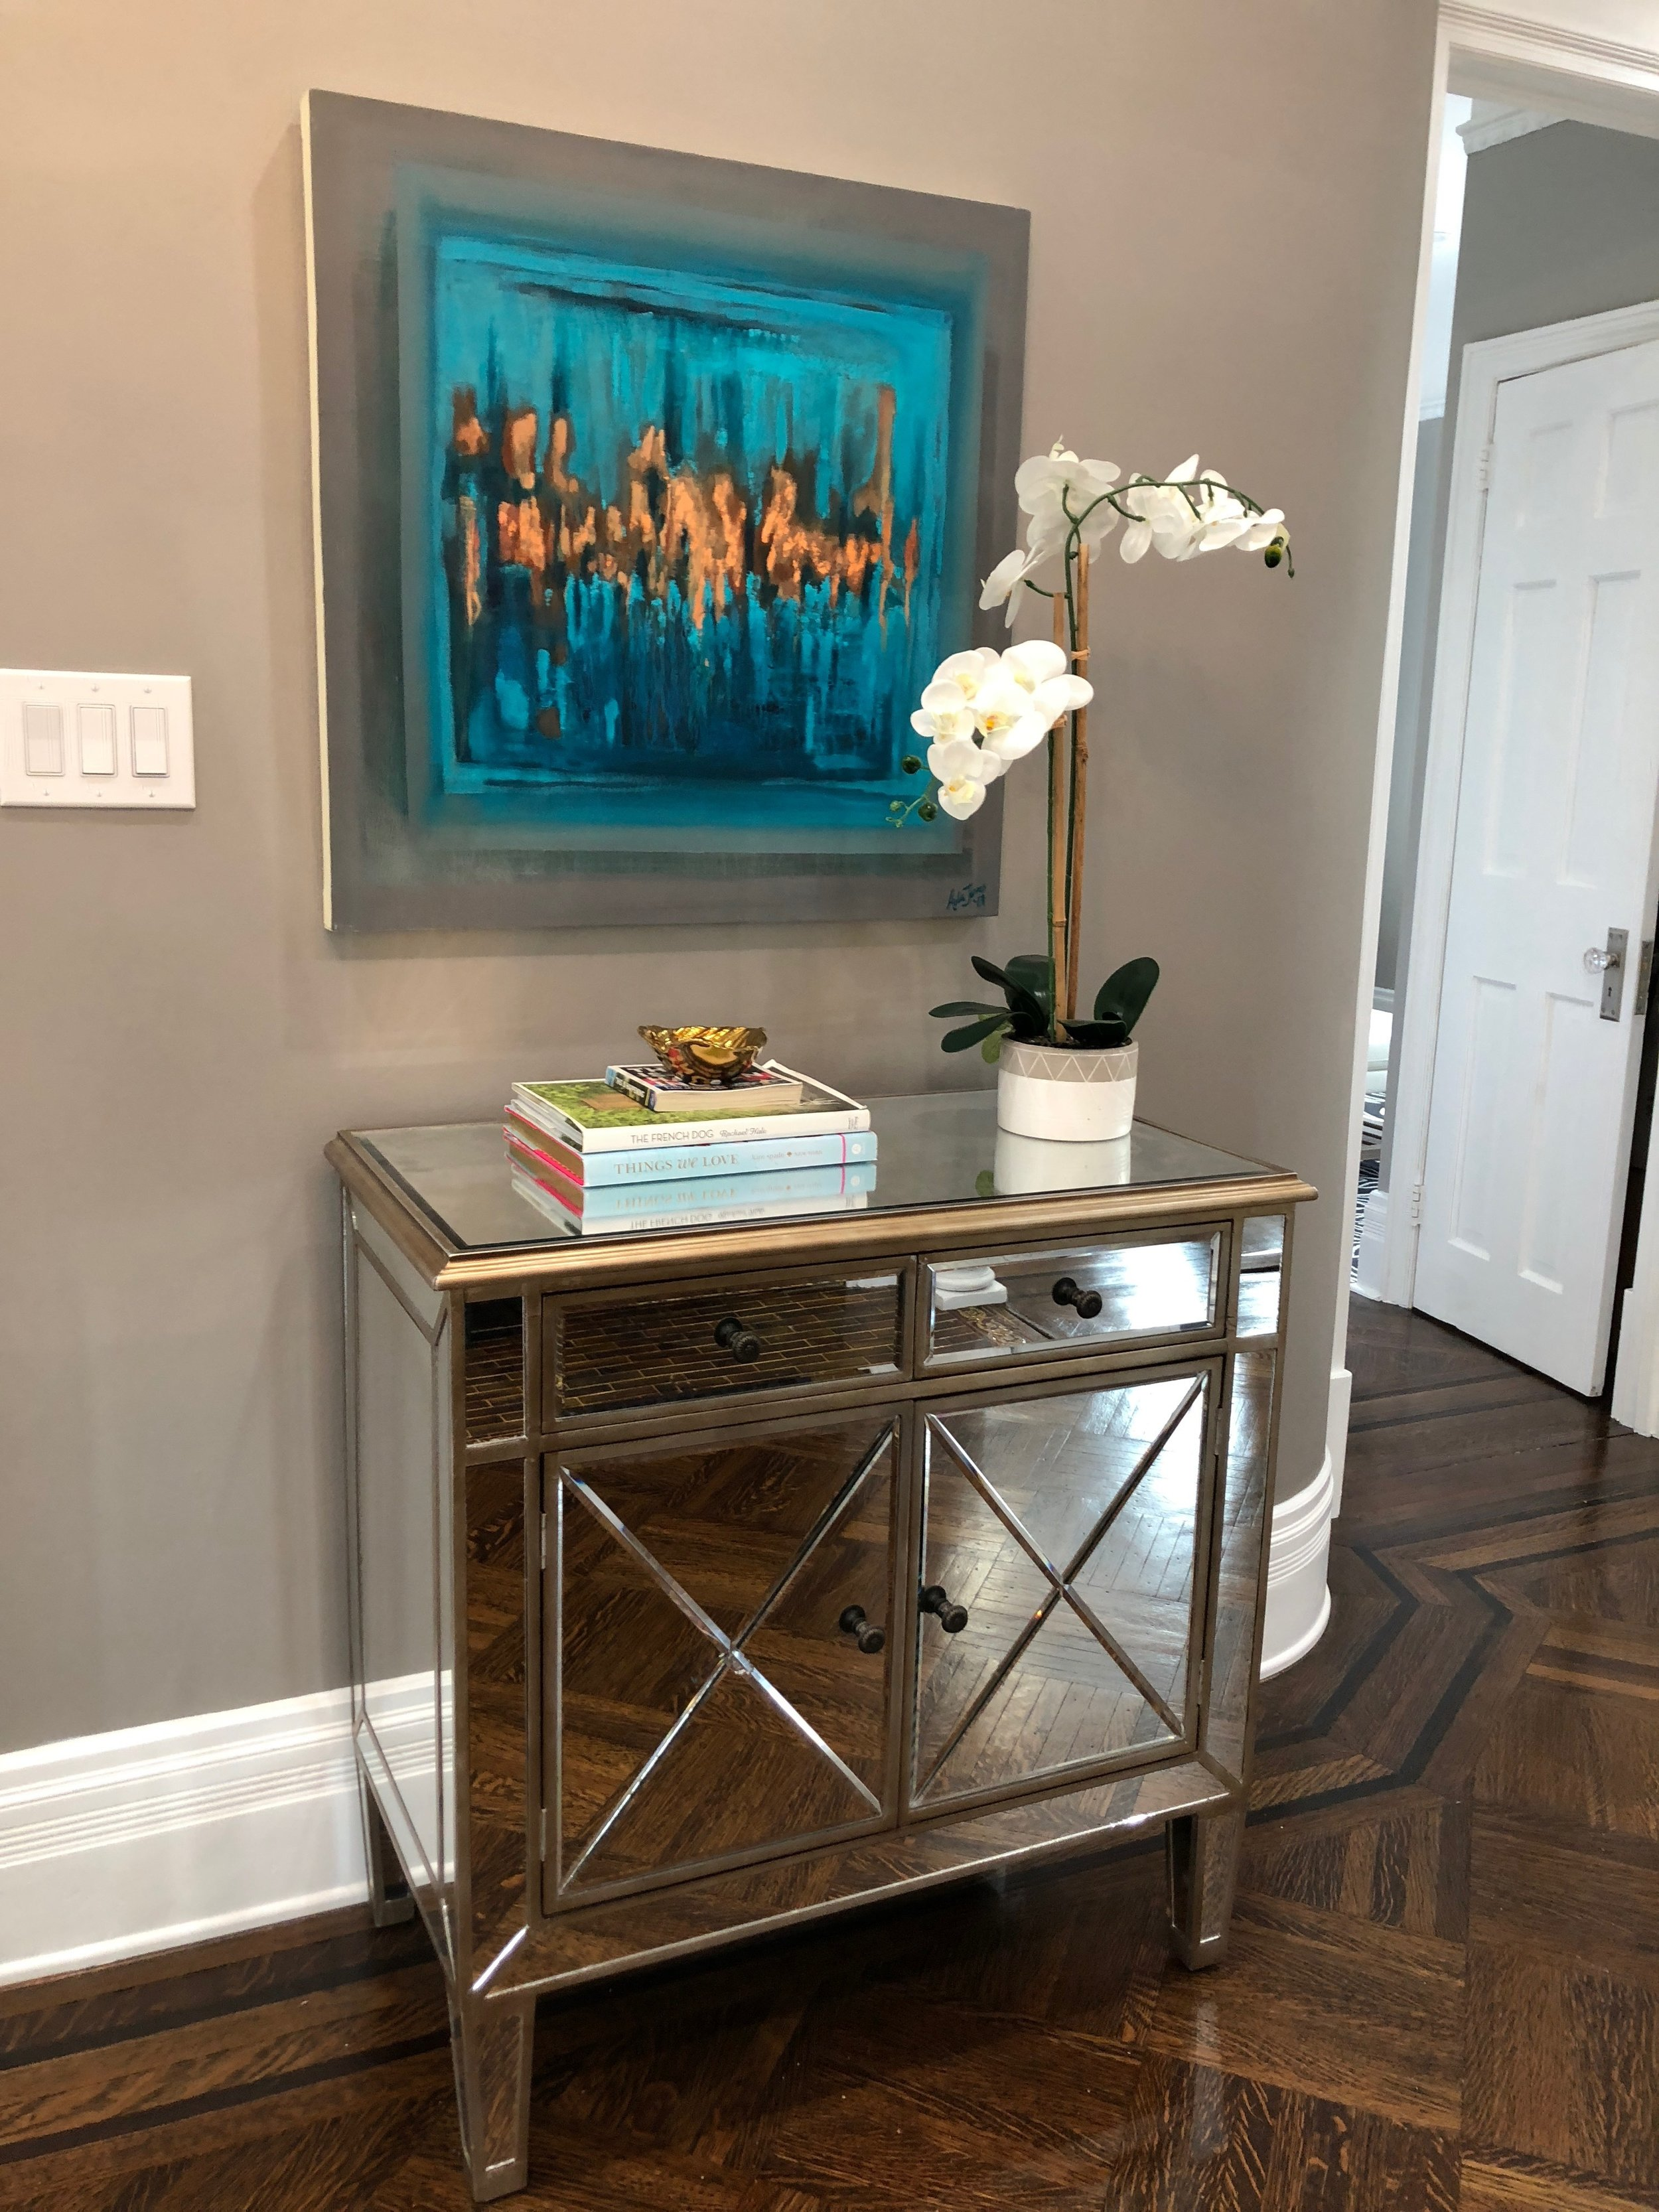 Dance copper leaf painting installed in a Maplewood home